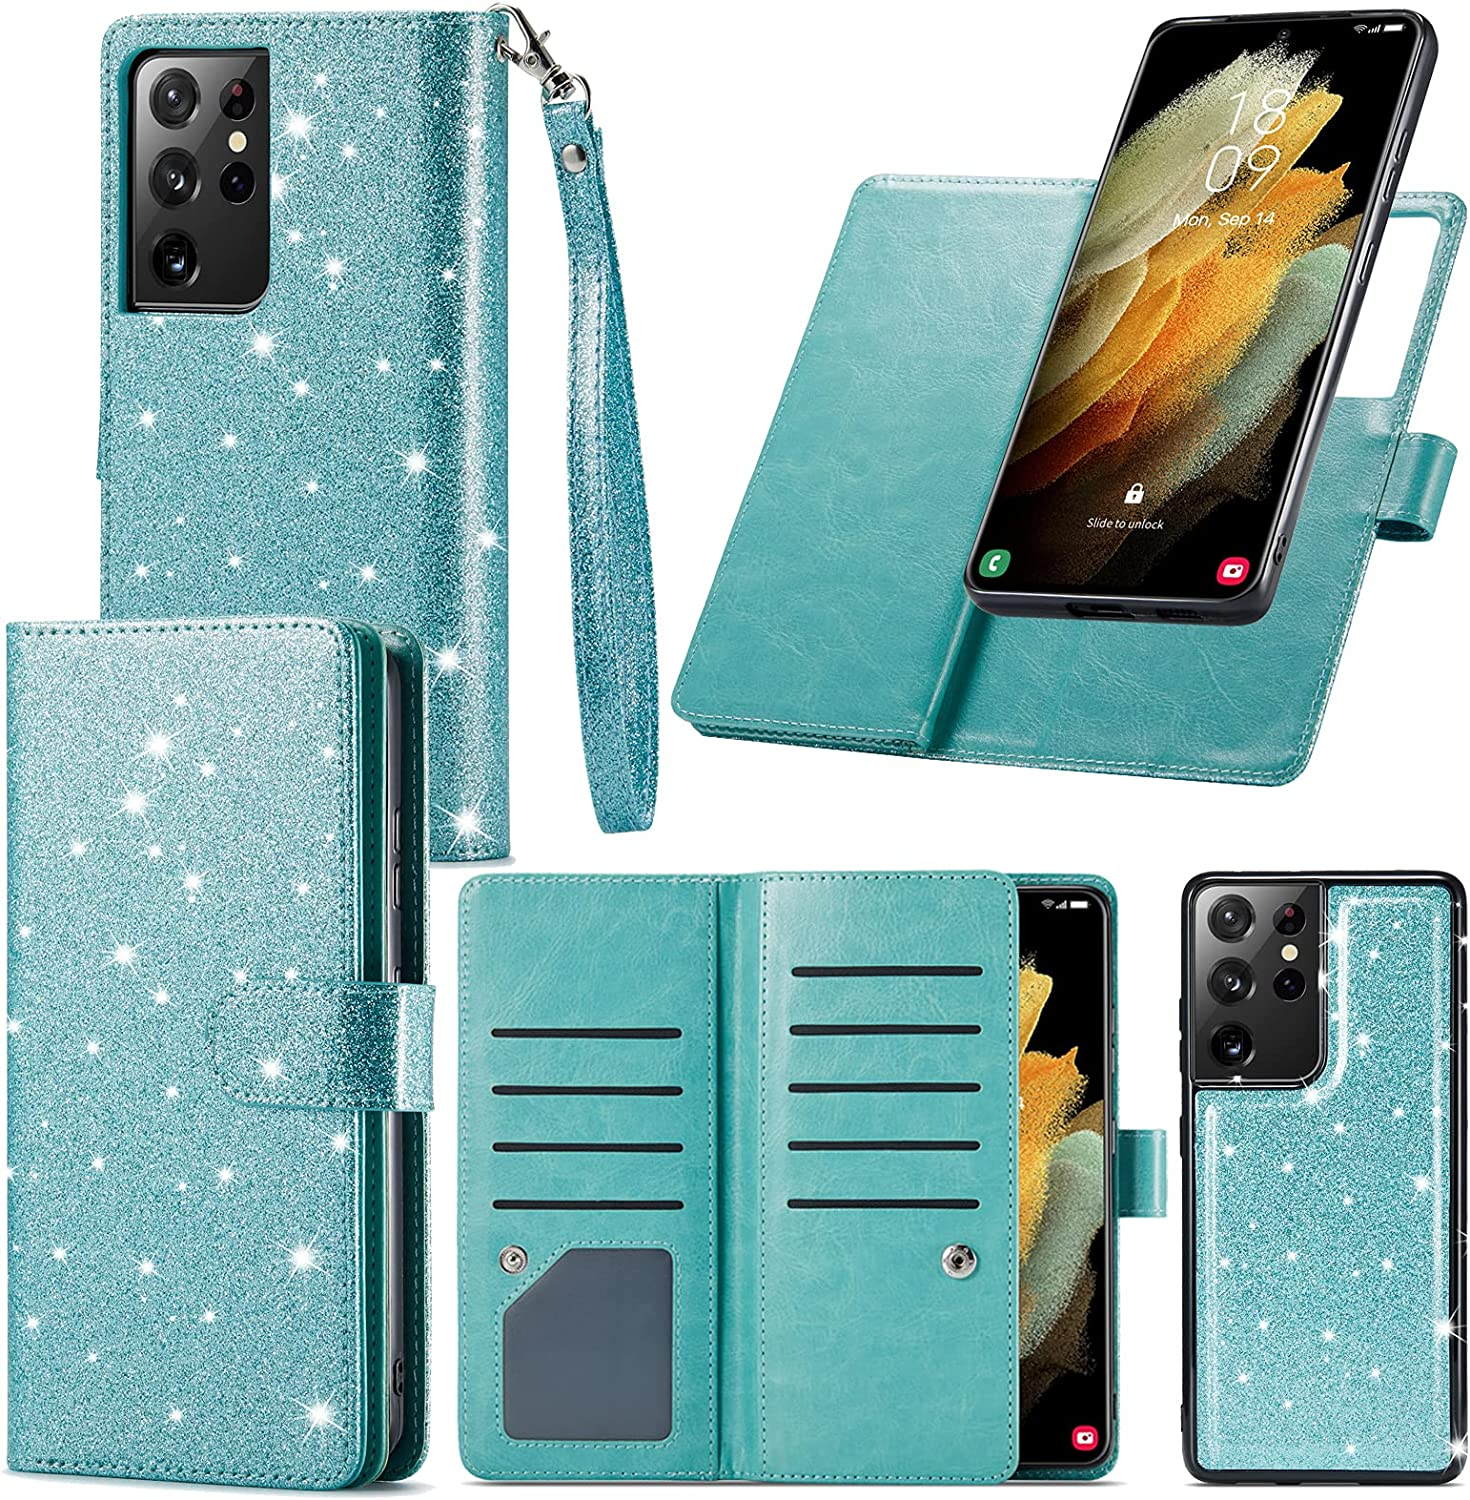 Varikke Samsung S21 Ultra Case Wallet, S21 Ultra Case with 9 Card Holder & Powerful Magnetic Detachable Cover & Kickstand Strap Lanyard Glitter PU Leather Flip Wallet Case for Galaxy S21 Ultra, Mint